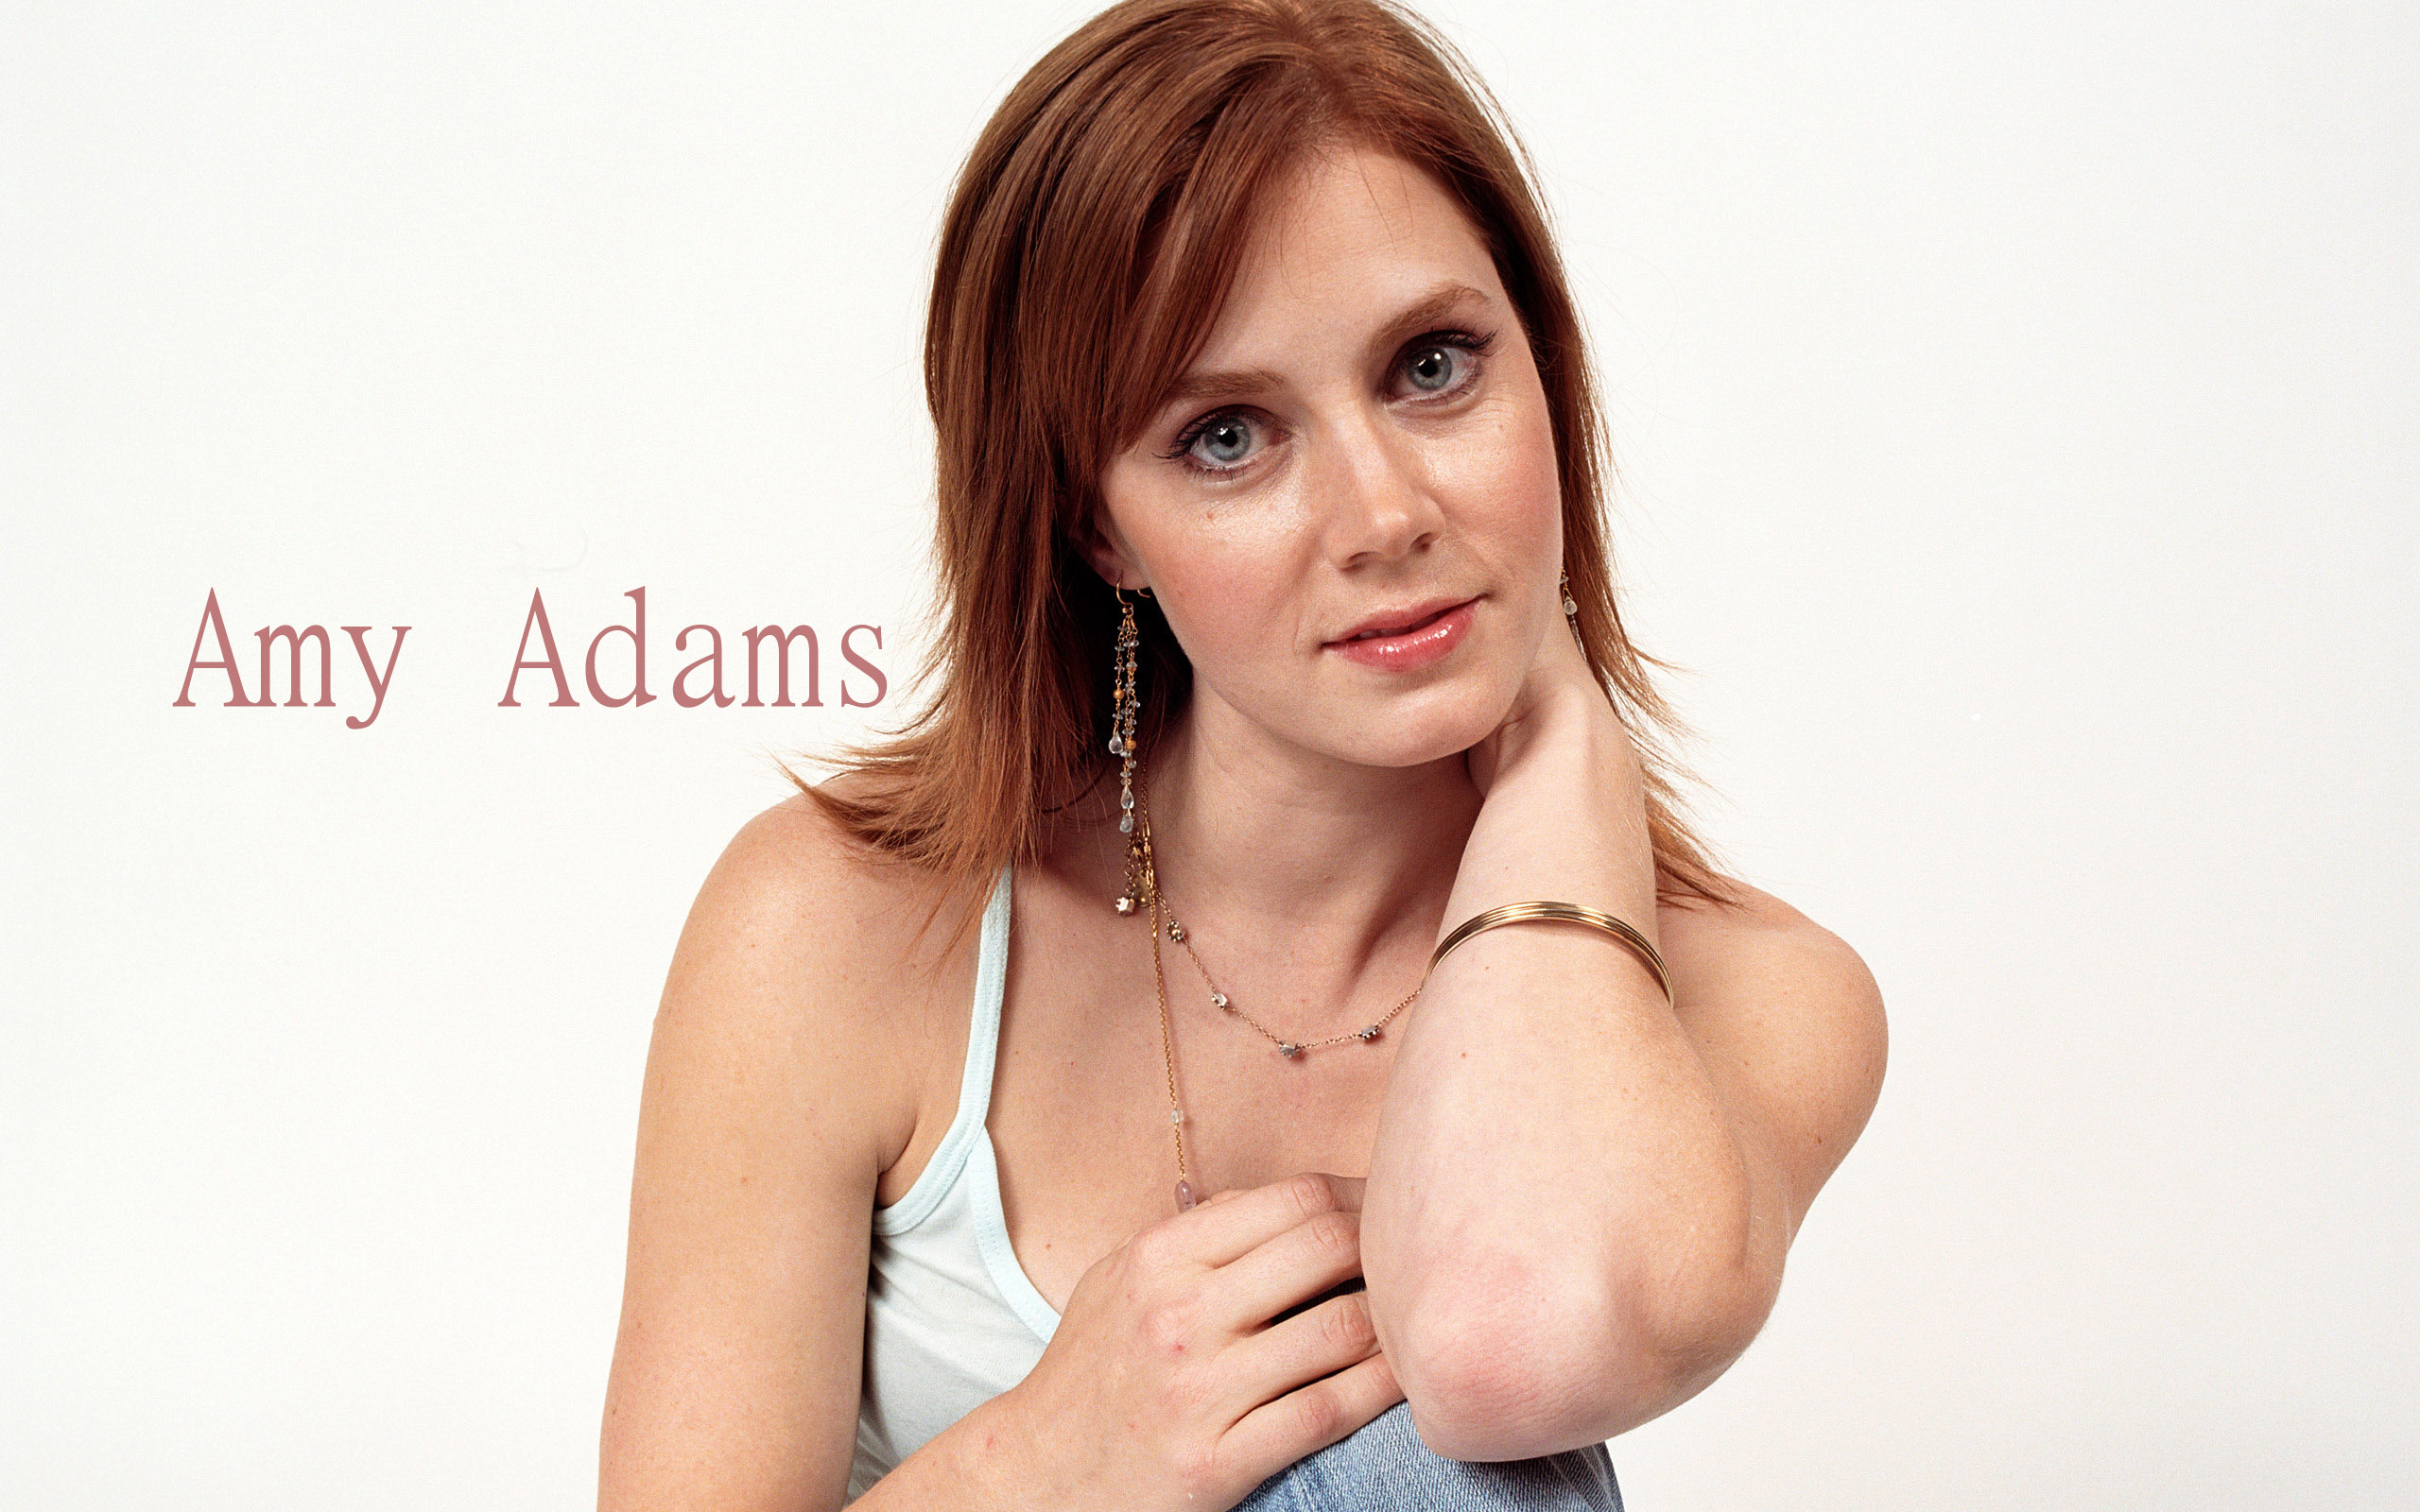 free amy adams nice lovely pose stilll download laptop hd background photo